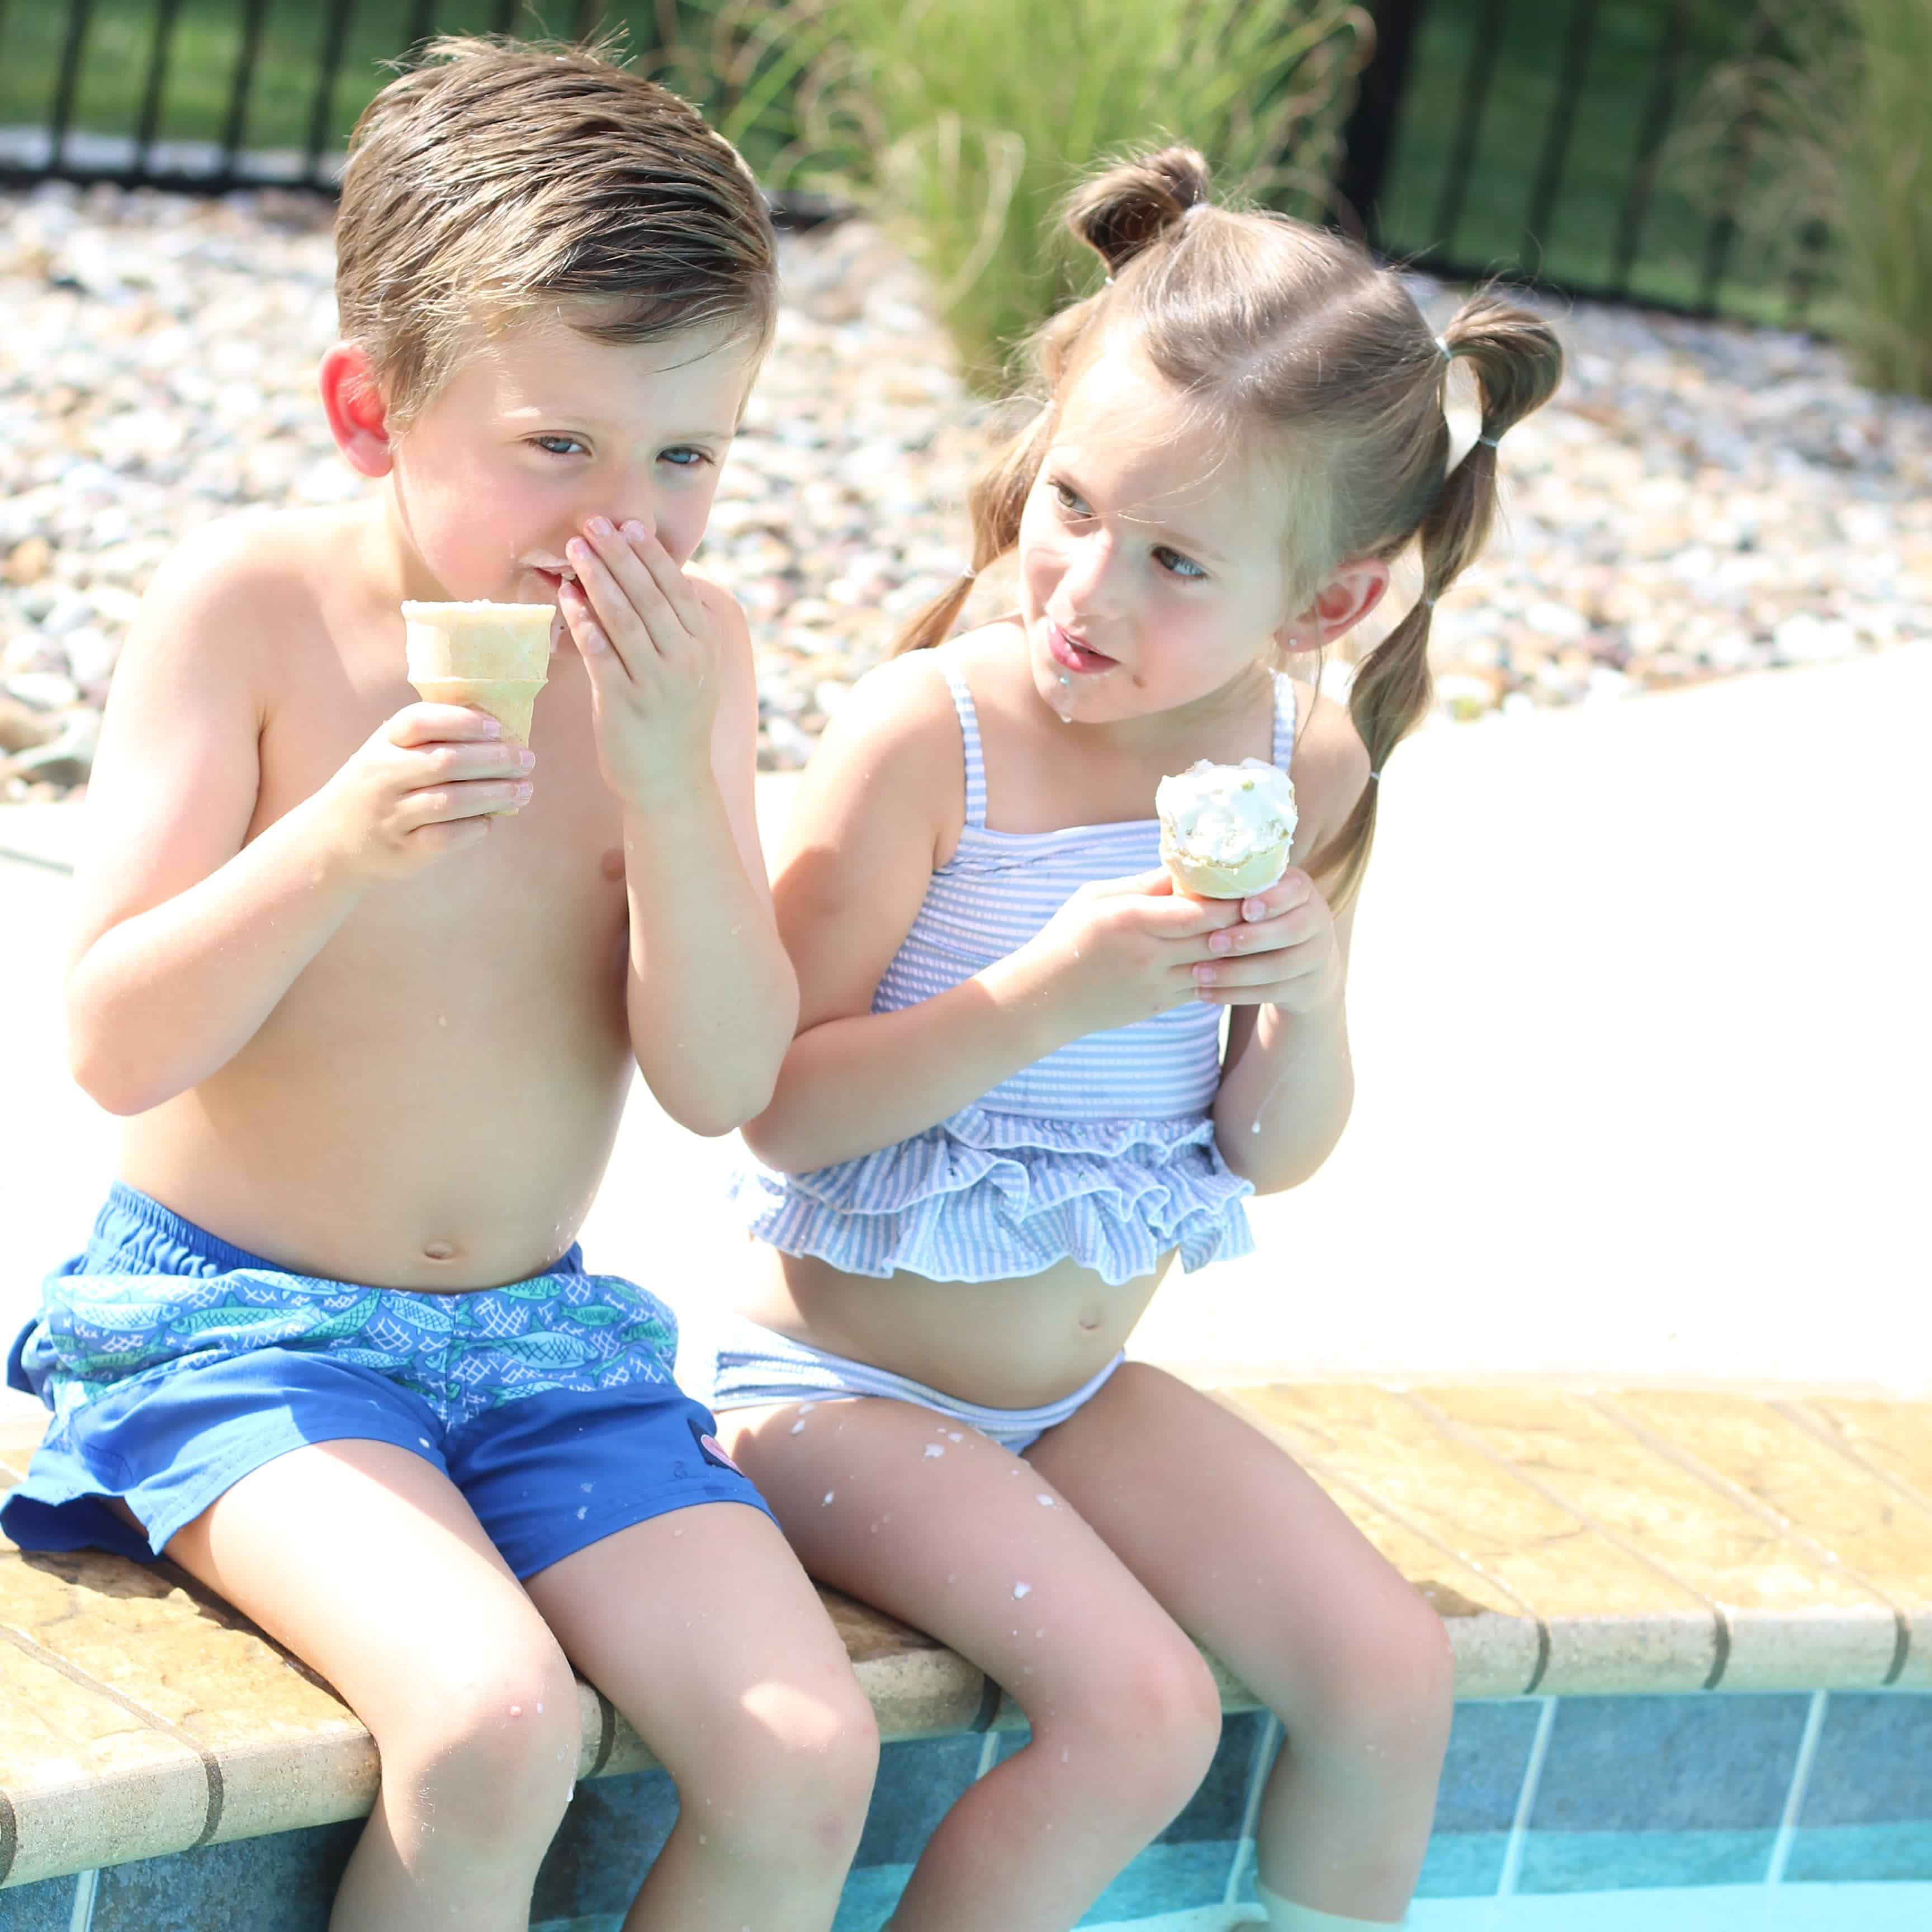 Two kids pool side eating ice-cream cones!